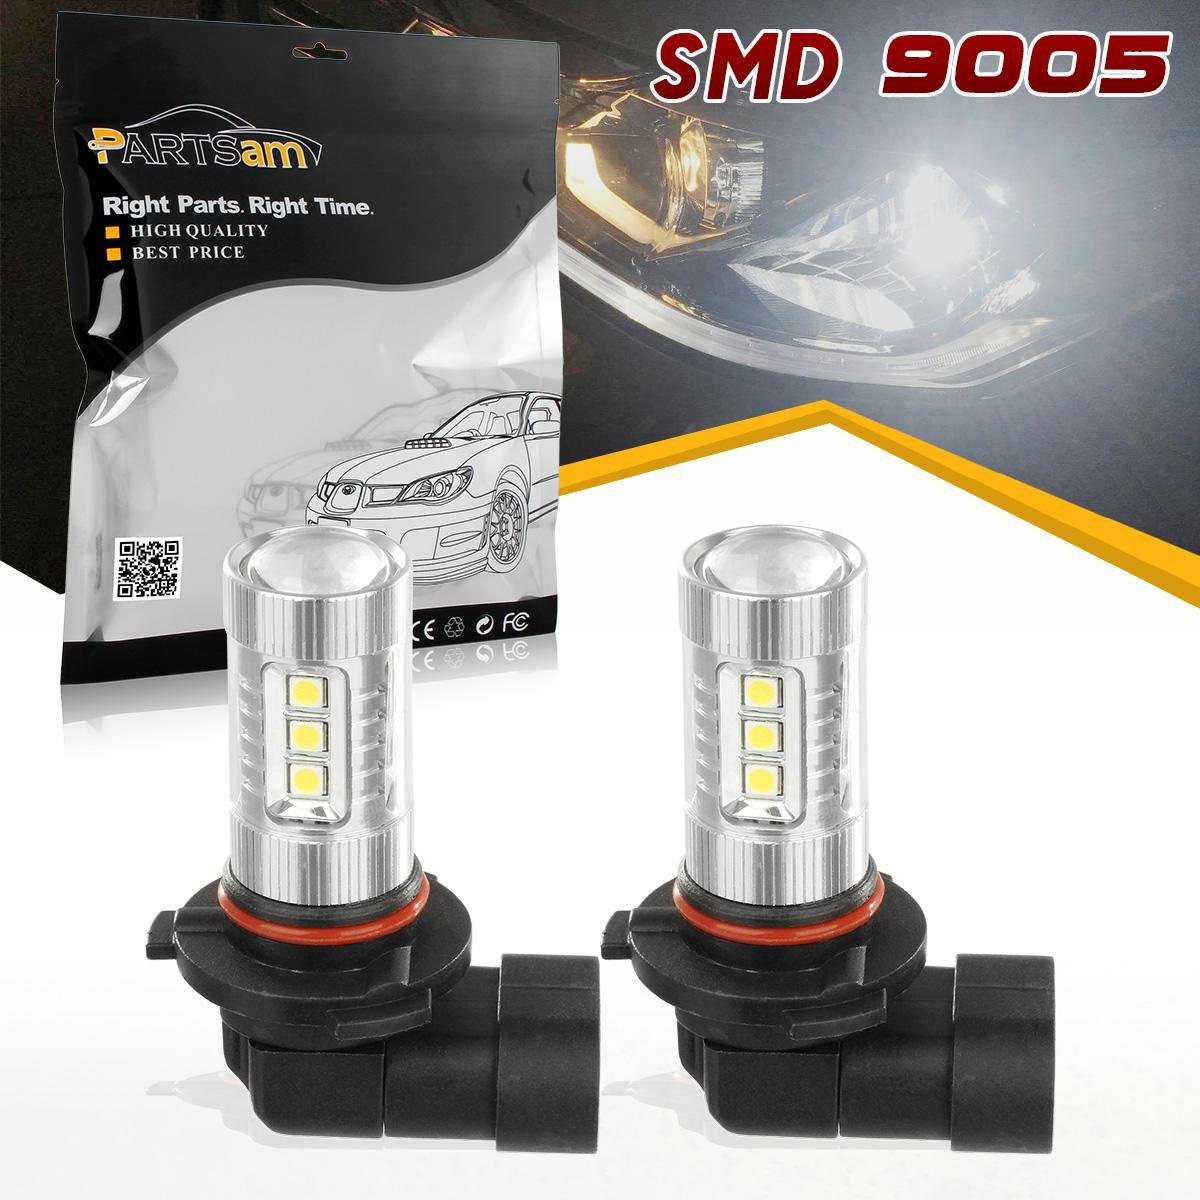 Partsam White High Power 80W 9005 HB3 9040 1200Lumen DRL Daytime Running Bulbs Lights for ACURA TL 2007 2008 2009 2010 2011 2012